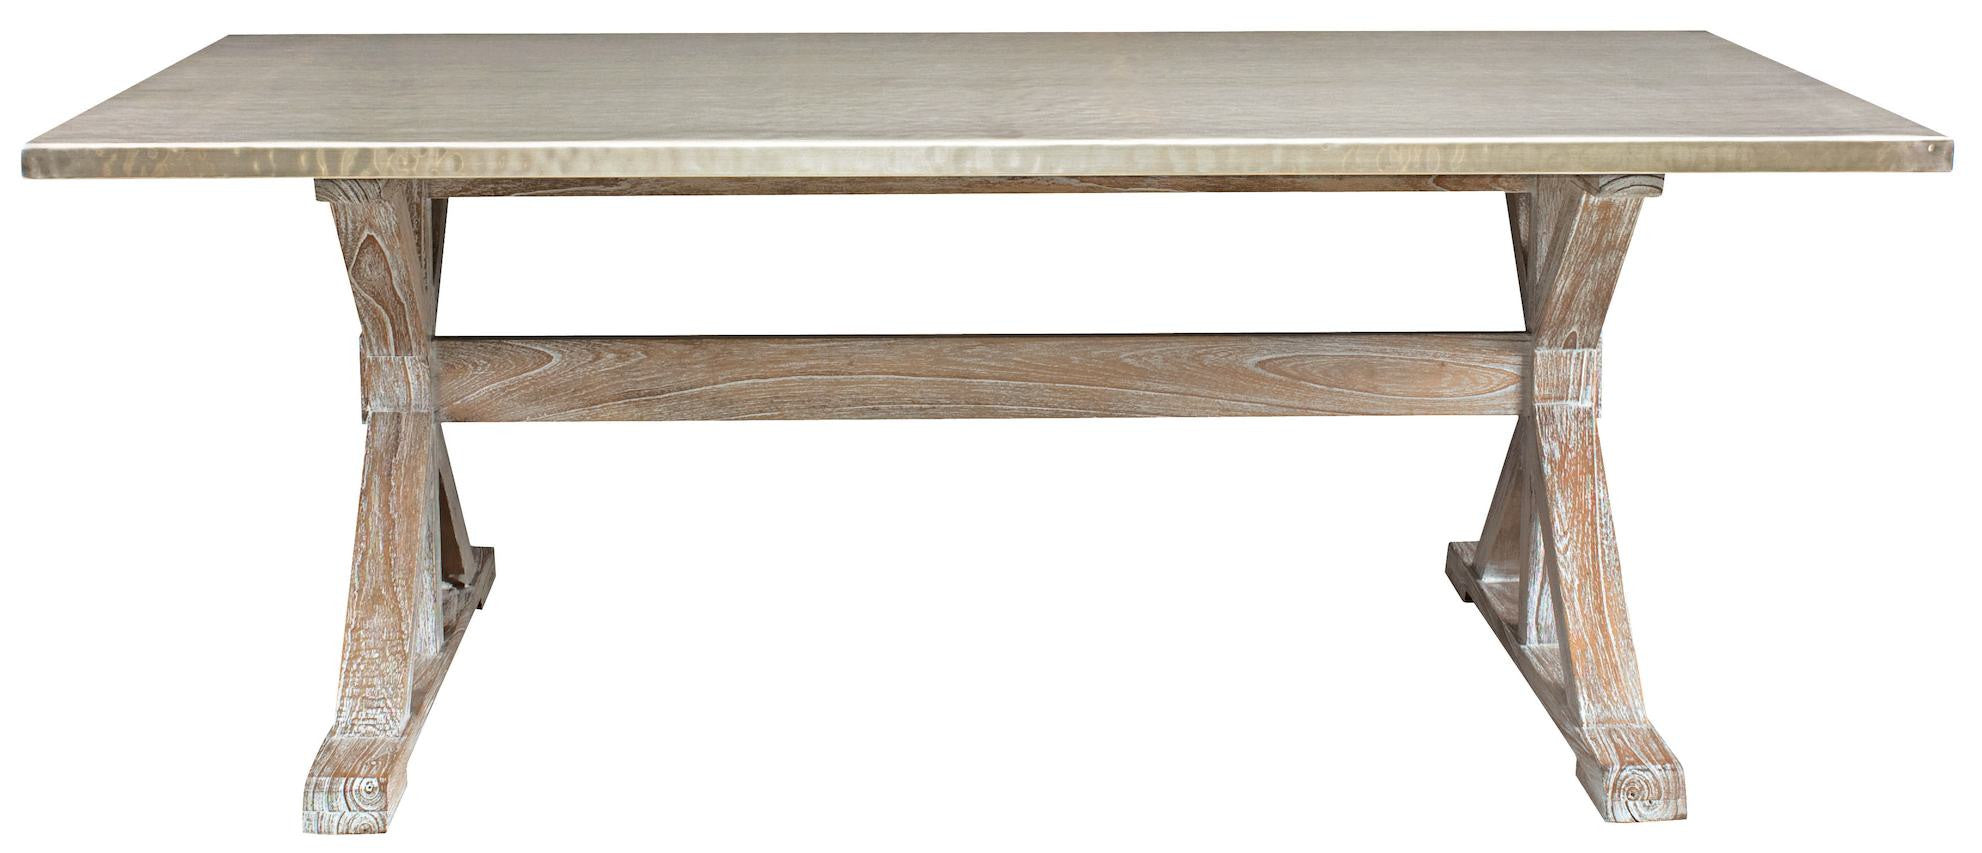 Taran Dining Table with a Hammered Metal Top – Mortise & Tenon